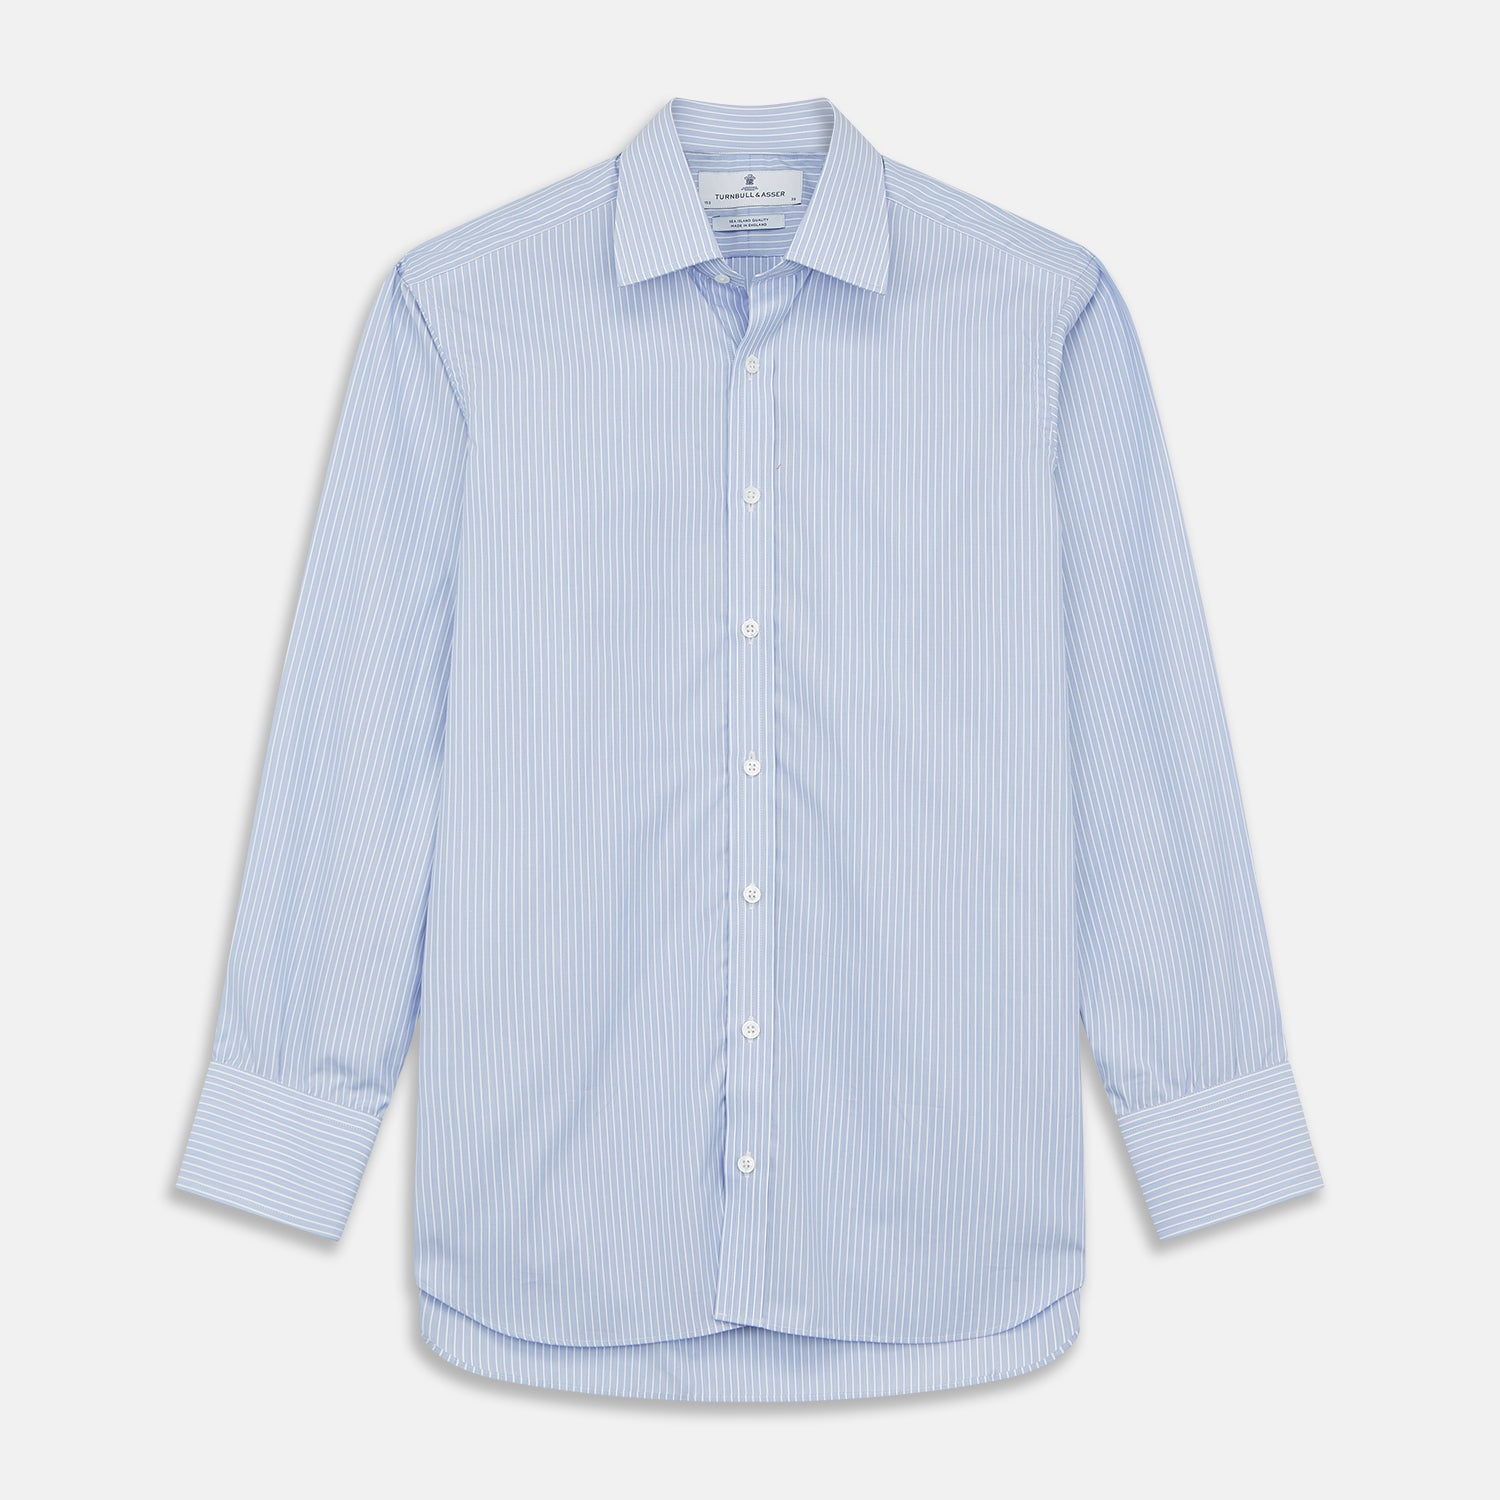 Blue And White Stripe Sea Island Quality Cotton Shirt With T&A Collar and 3-Button Cuffs - 16.0 from Turnbull & Asser